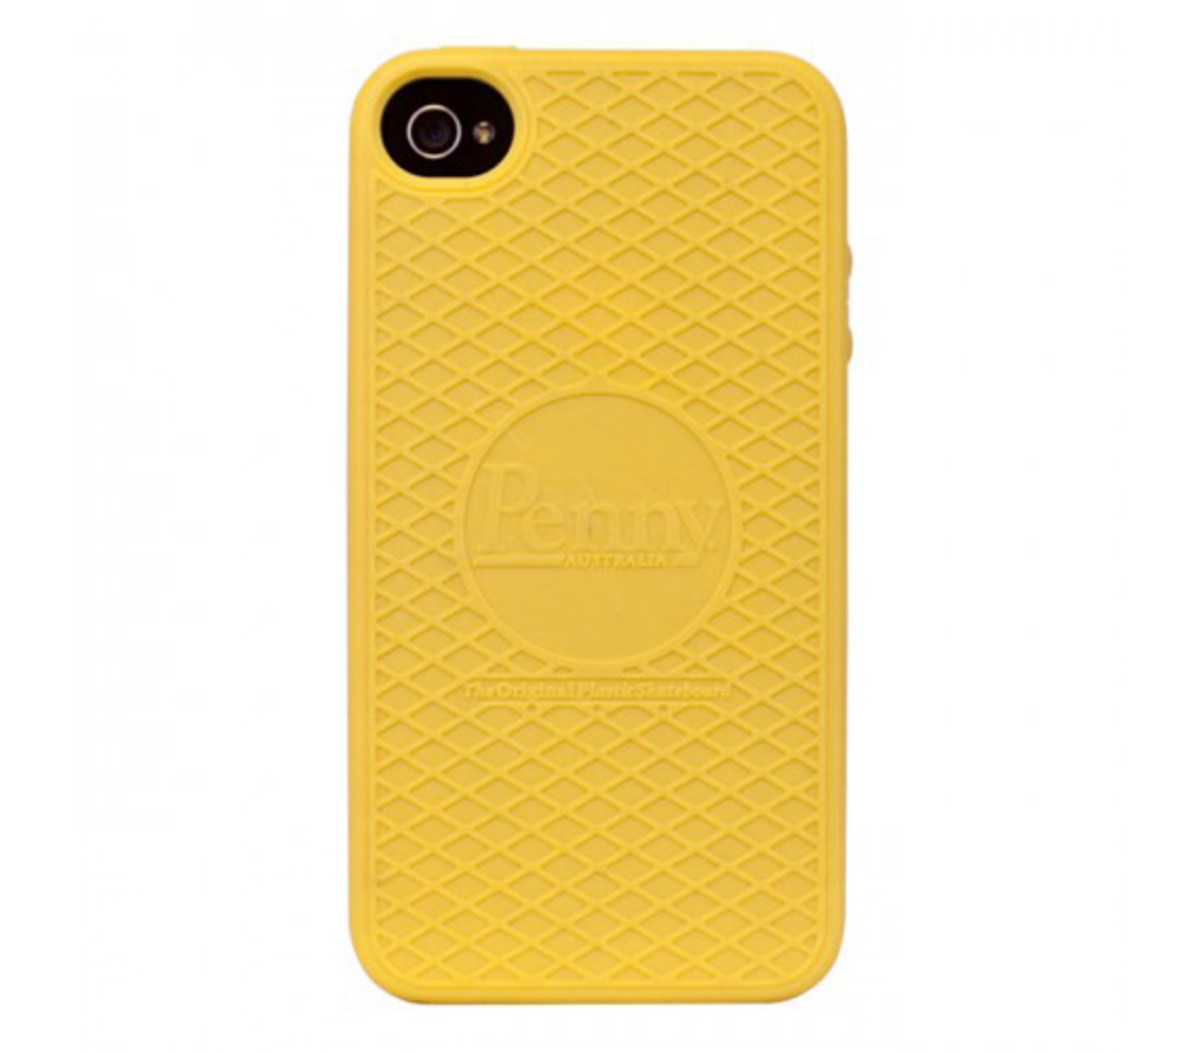 penny-skateboards-iphone-cover-06